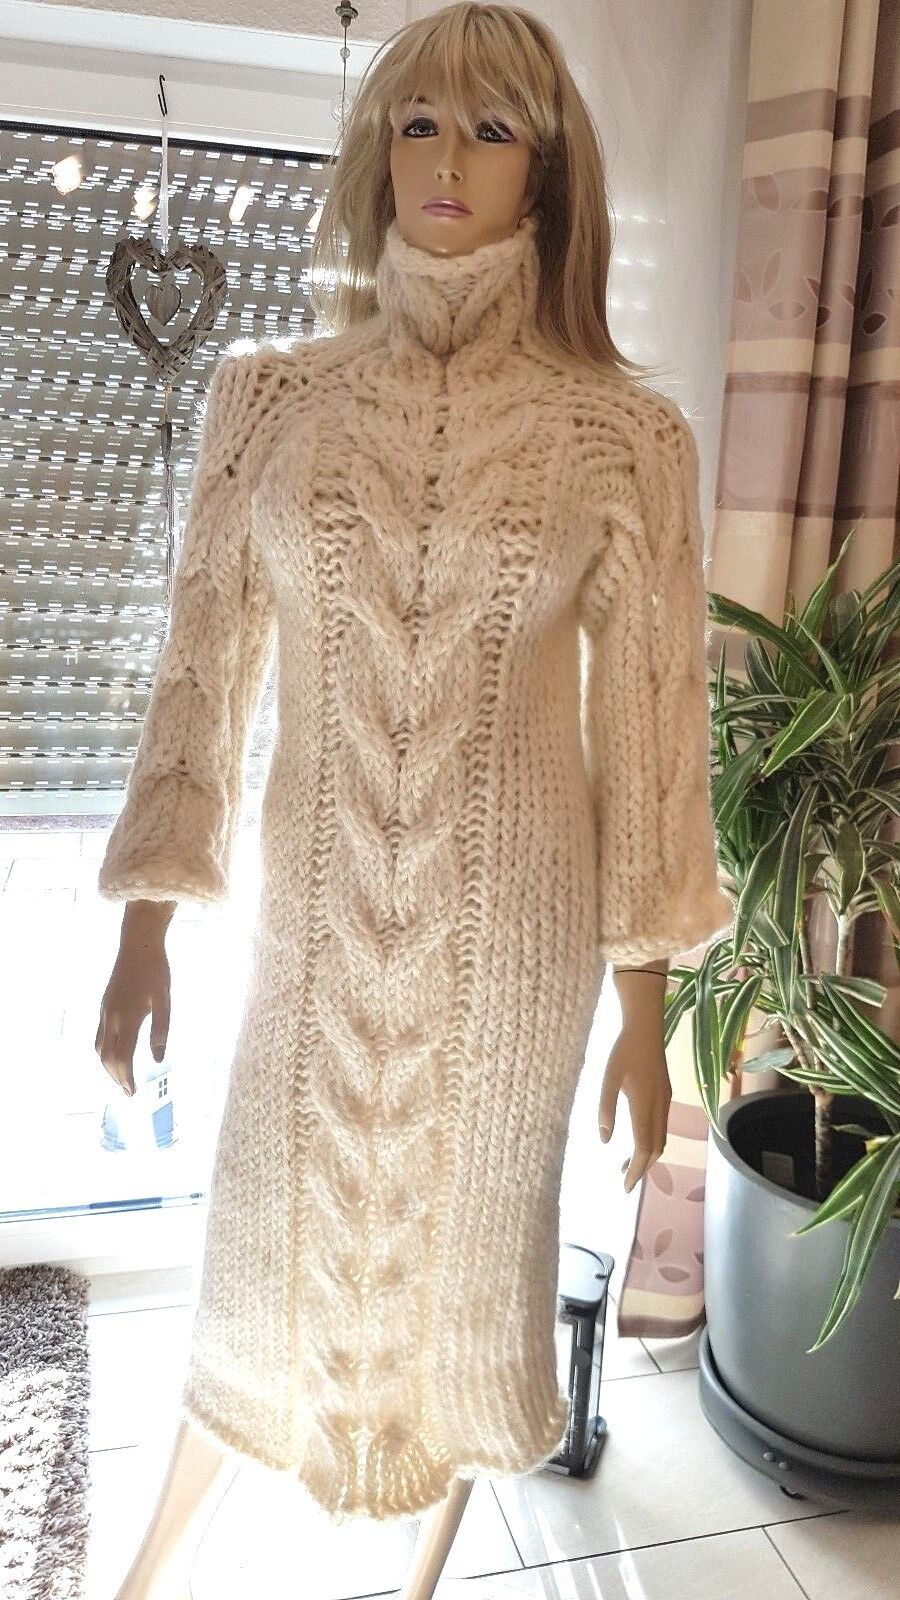 TRAUMMOHAIR KID MOHAIR KLEID DRESS SWEATER Zopfmuster Cable Stitch Stitch Stitch wollwhite -M- 19342a